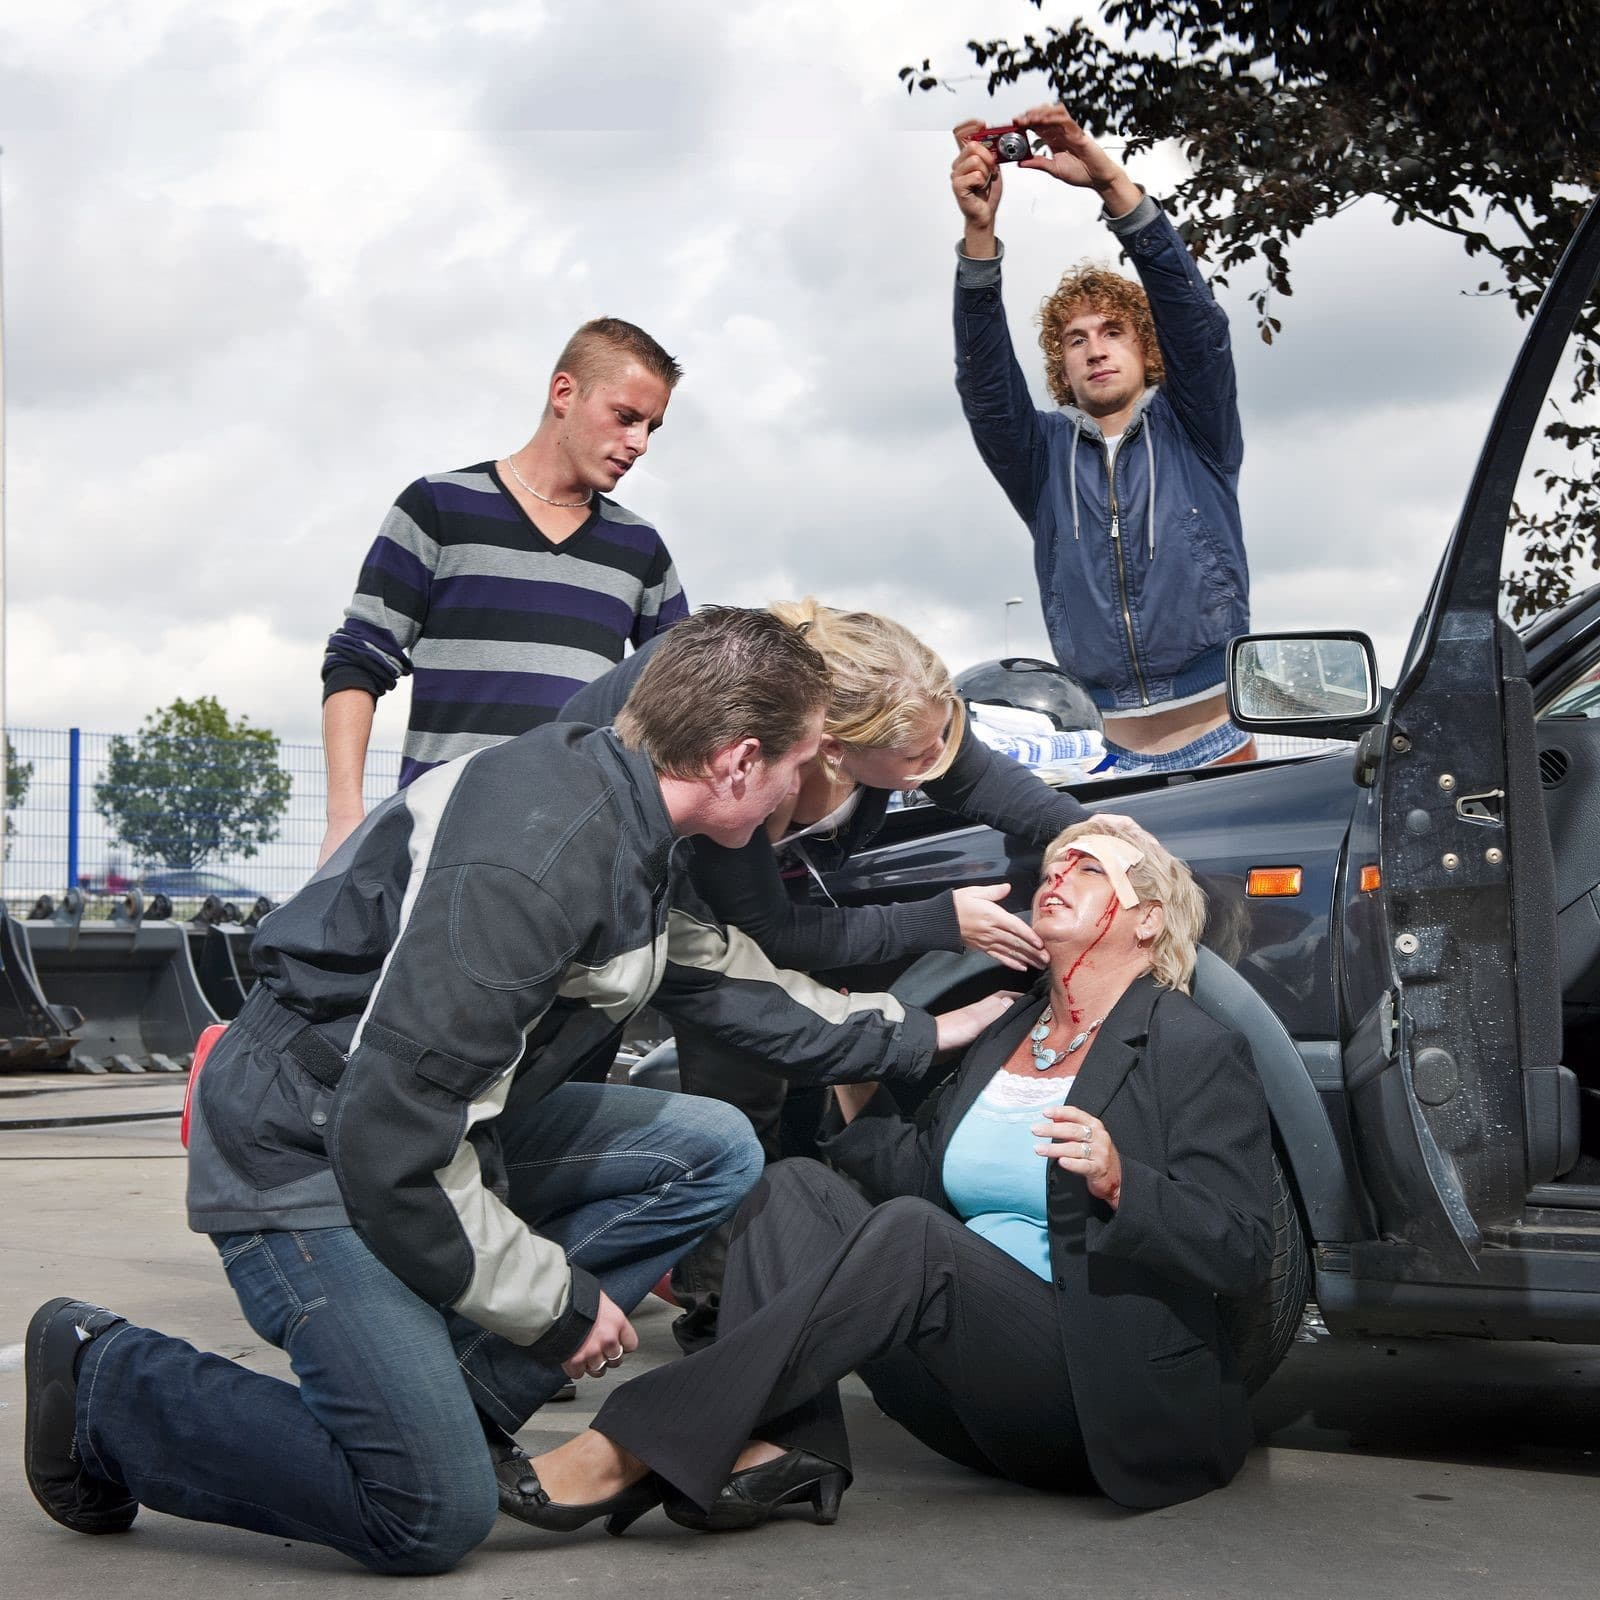 A Personal Injury Lawyer Offers Service to Vehicular Accident Victims